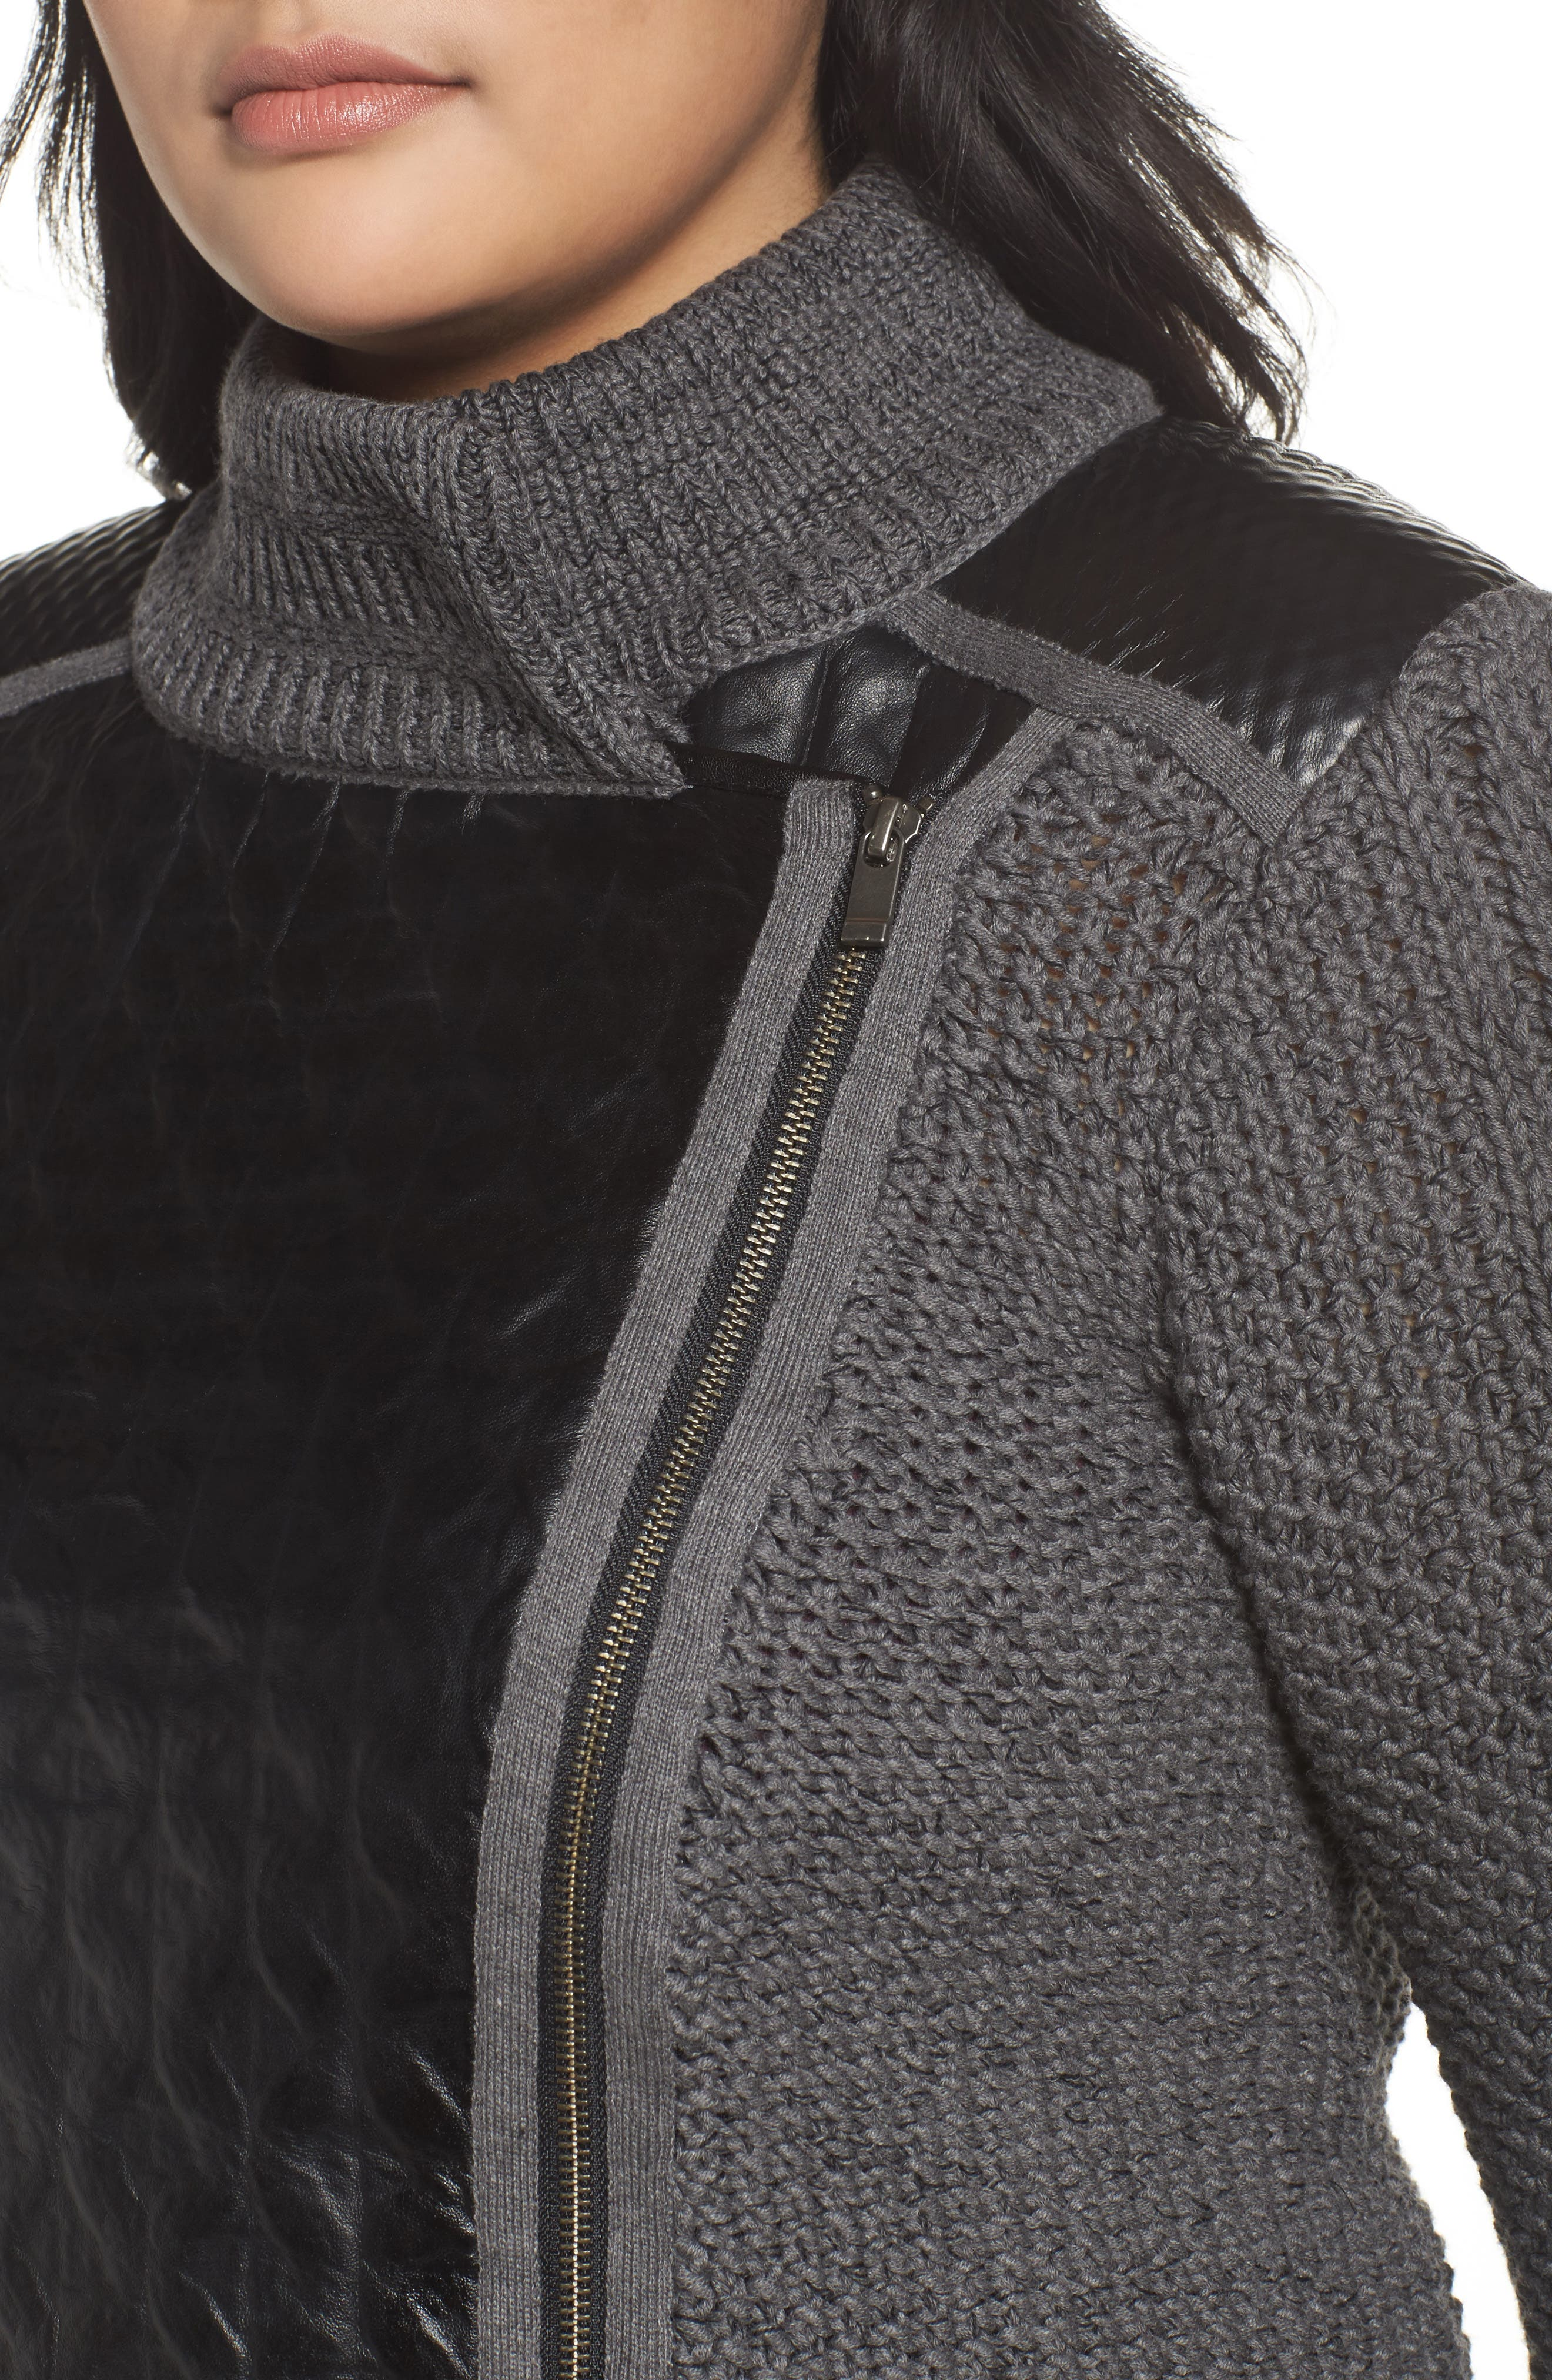 Cable Knit & Leather Jacket,                             Alternate thumbnail 4, color,                             020